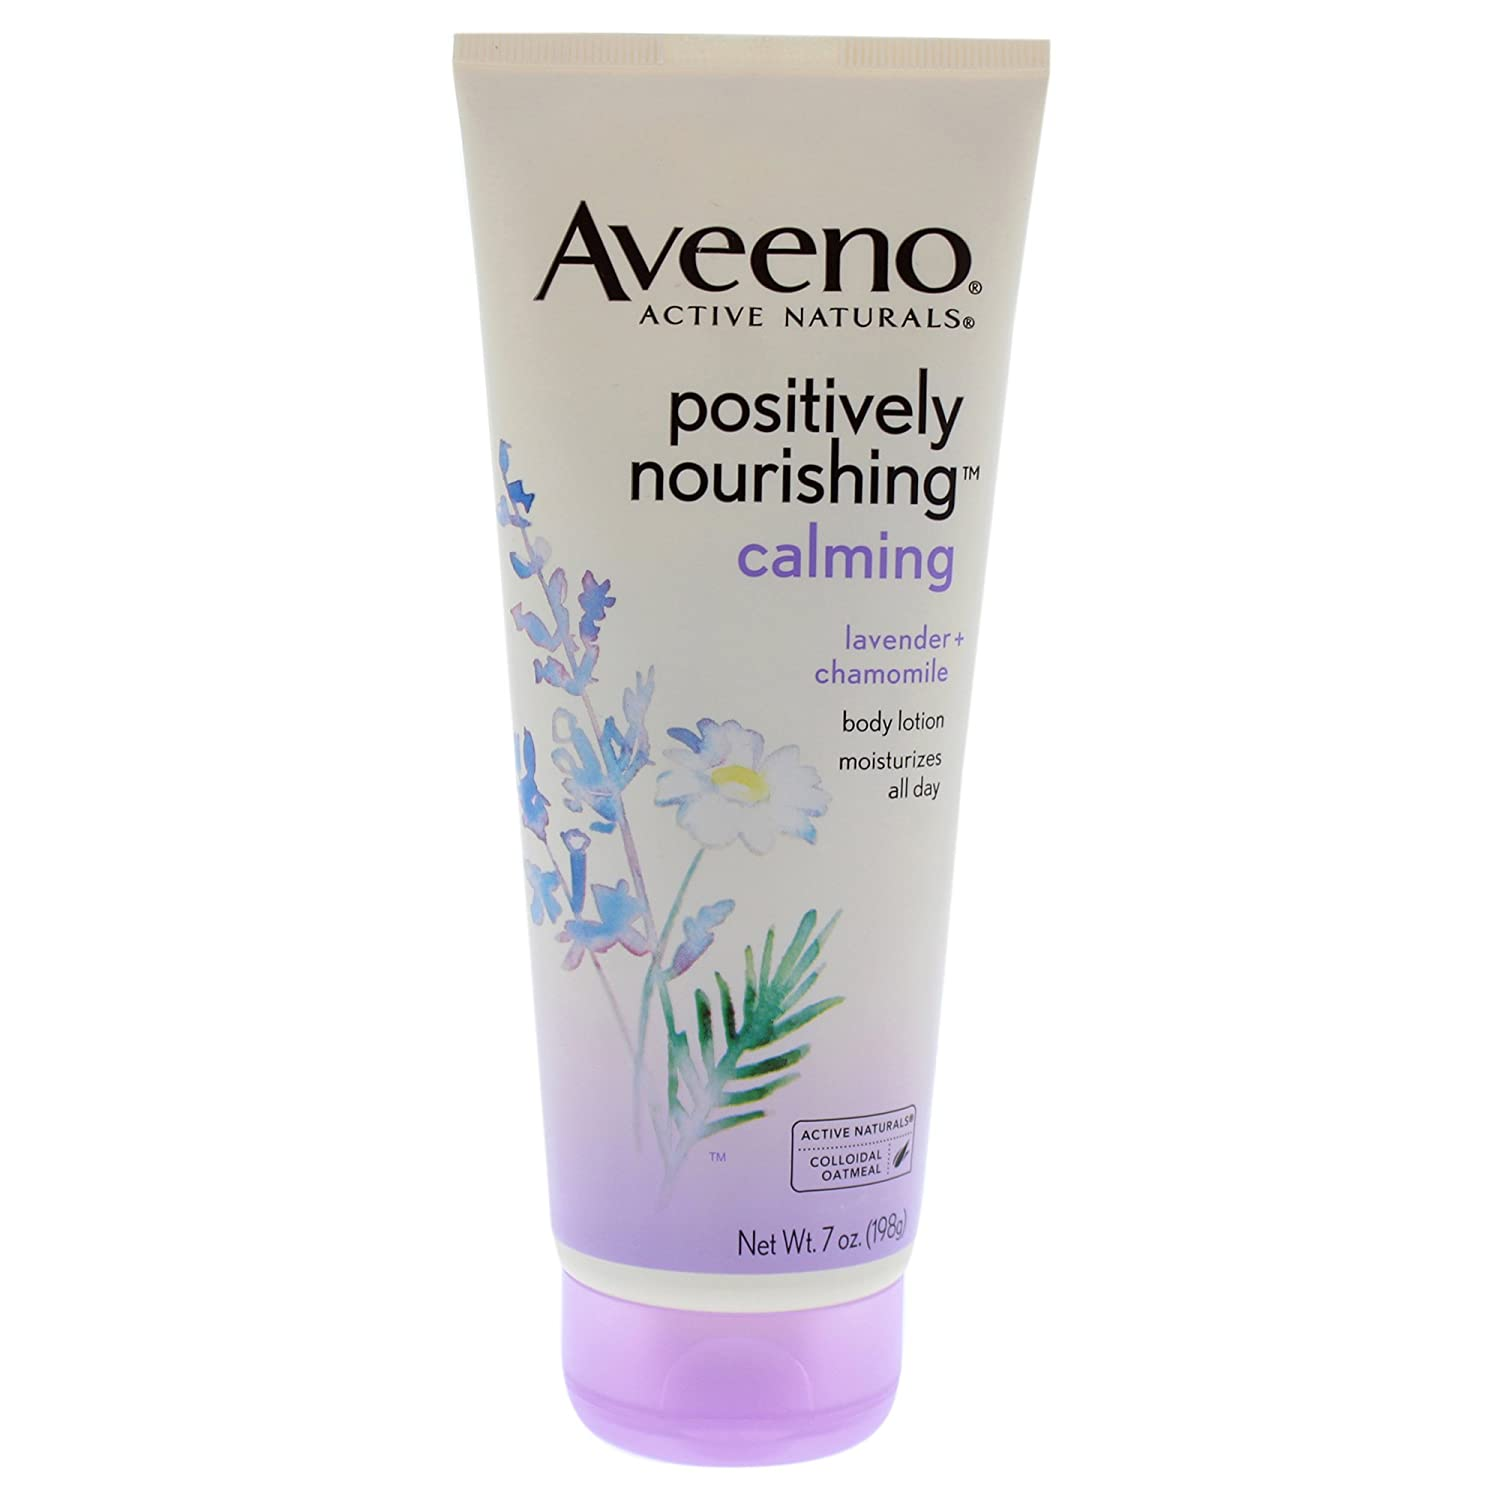 Aveeno Positively Nourishing Lavender And Chamomile Calming Body Lotion, 7 Oz 381371152087